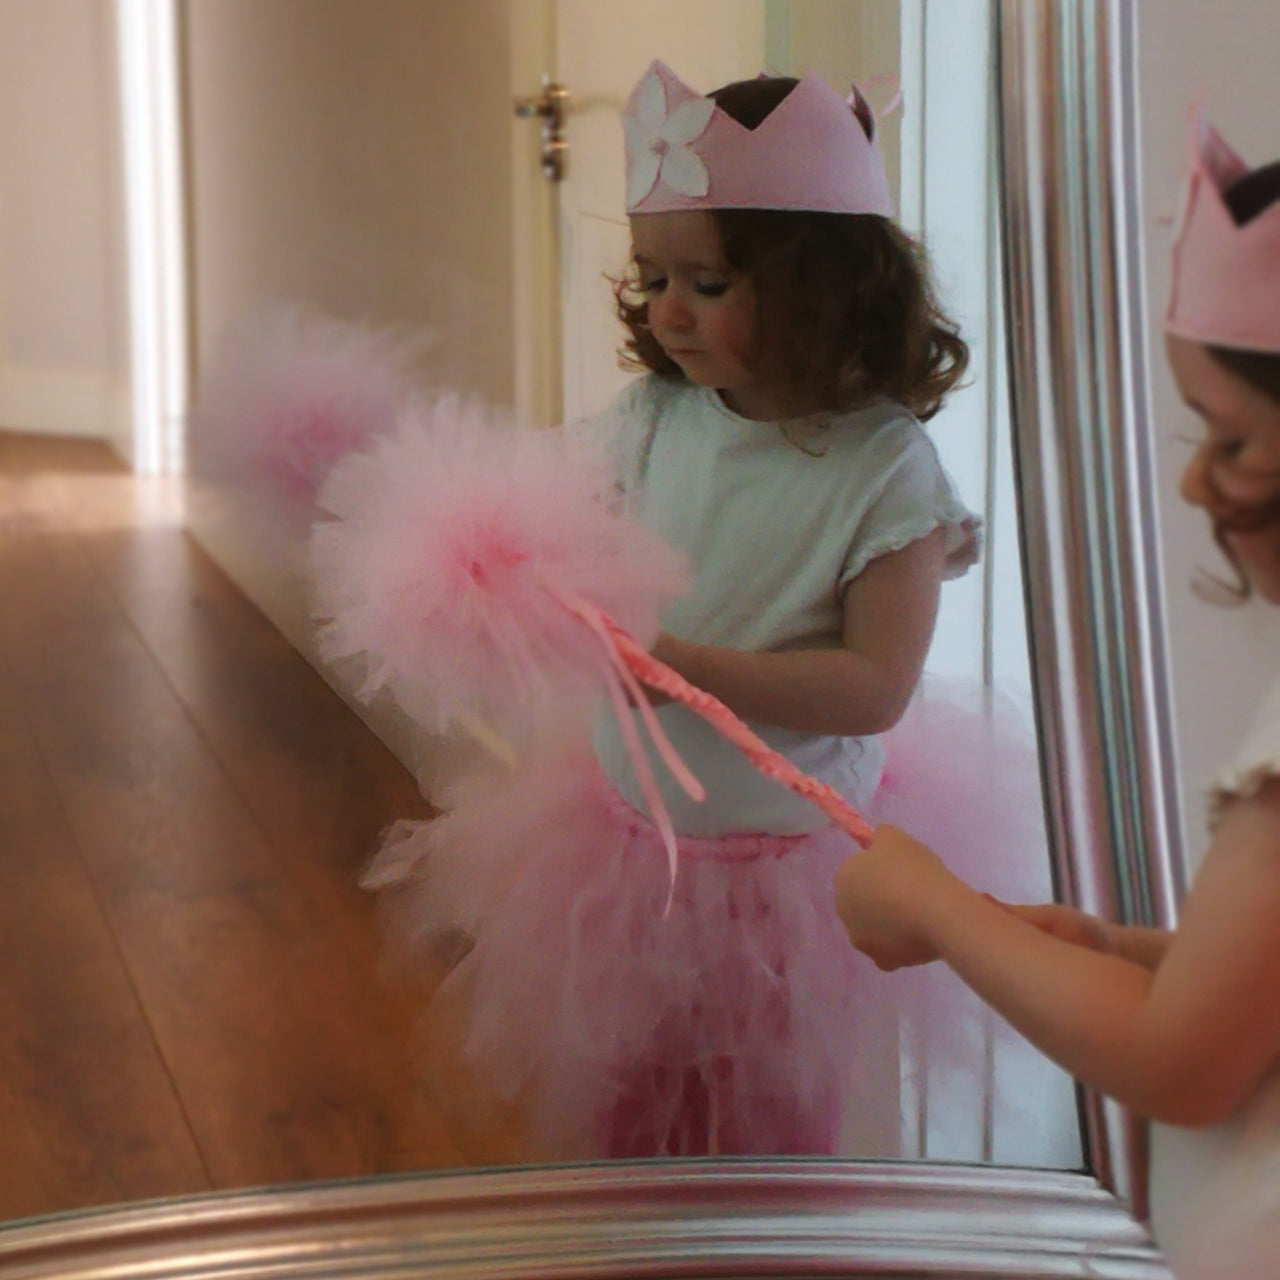 Ballerina Set Dress Up (Crown, Wand and Tutu) - Kids Room Decor | Toys Gifts | Childrens Interiors | Rooms for Rascals